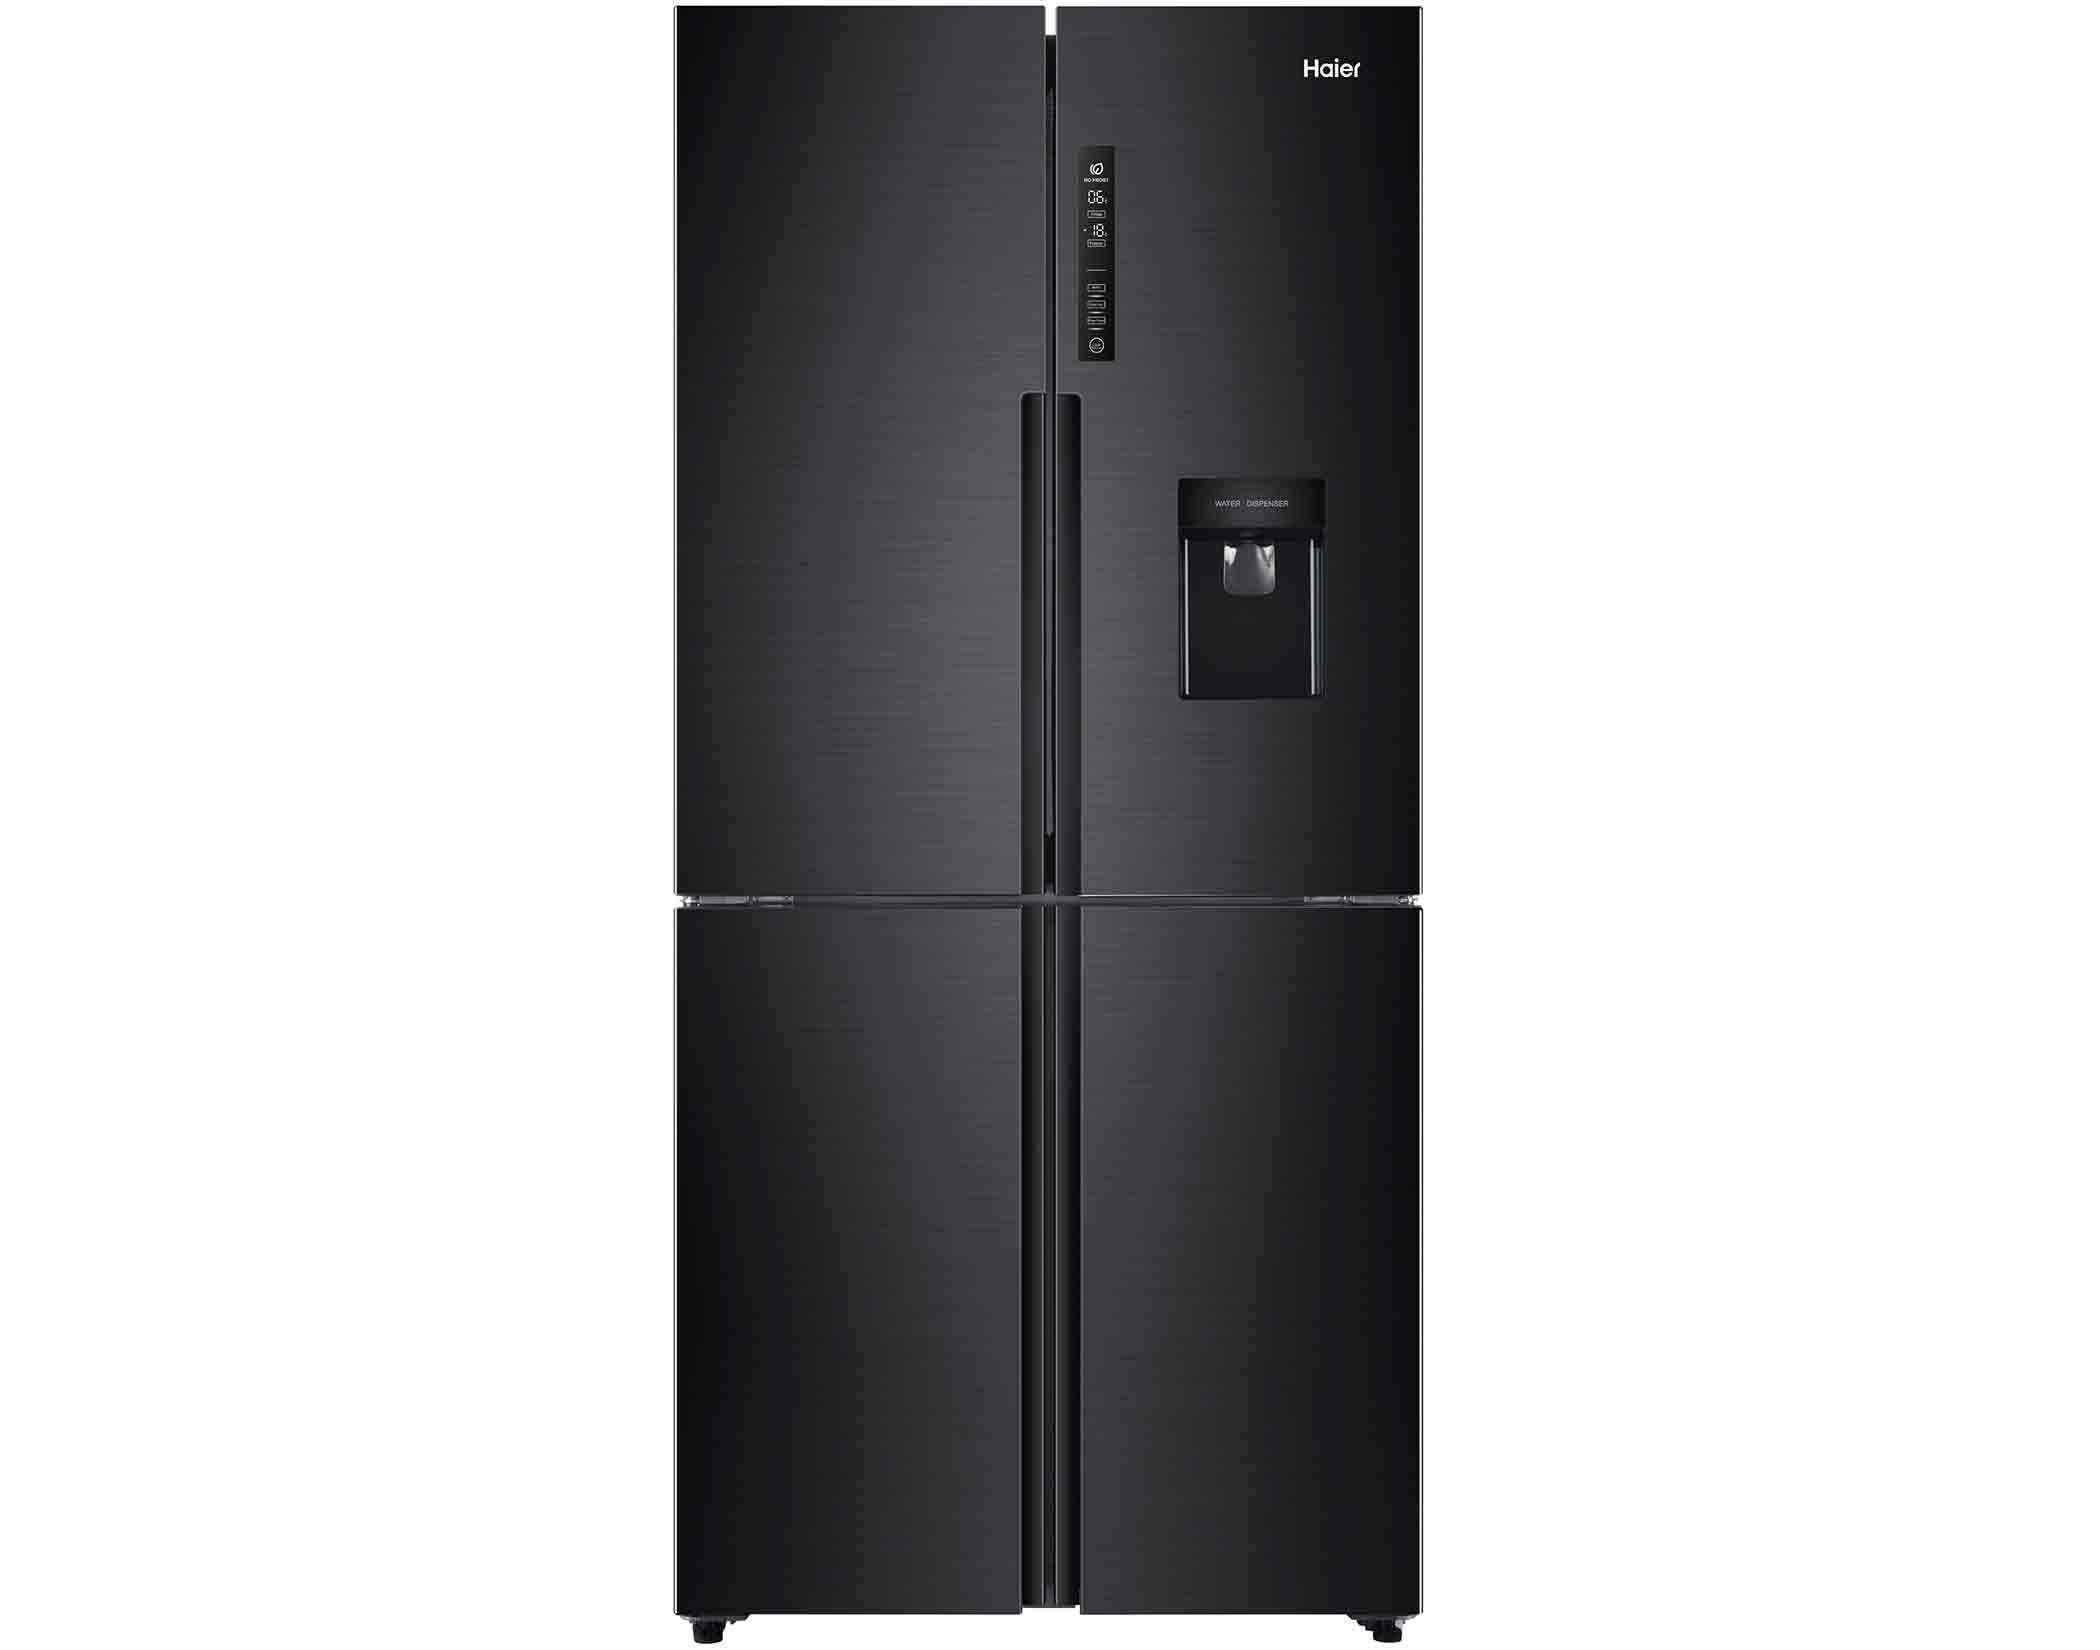 Haier HRF516YHC 516L Black French Door Refrigerator Main